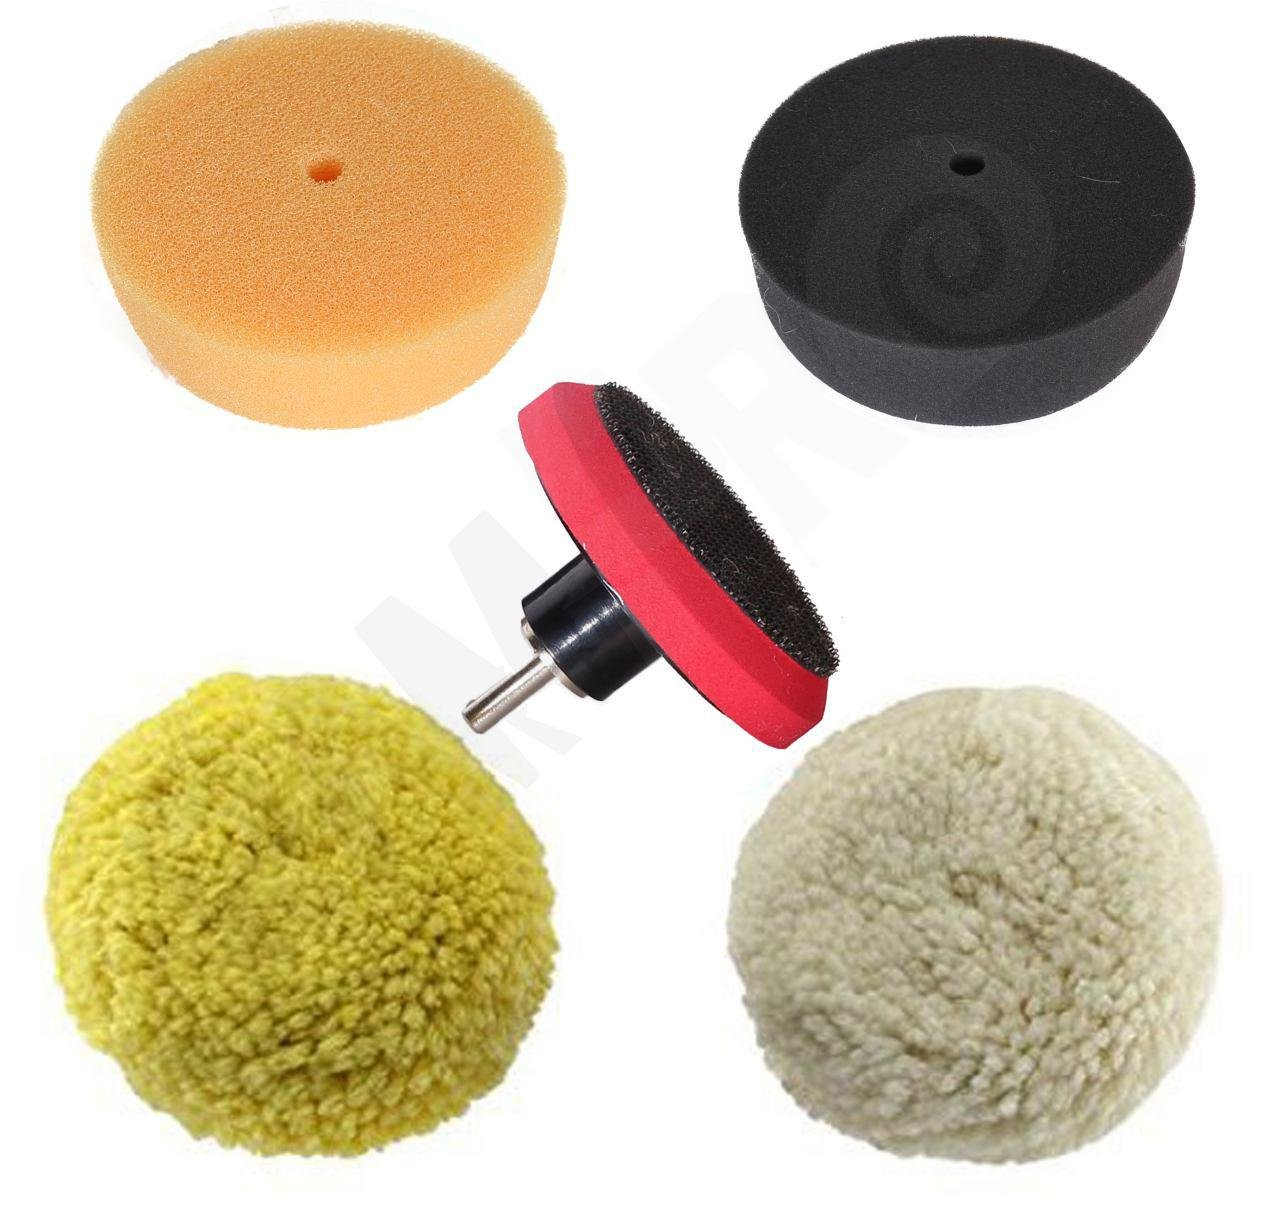 RAM-PRO 3'' Car Buffing and Wax Polishing Pad Kit - Drill Attachment Tool with Fastener Wheels